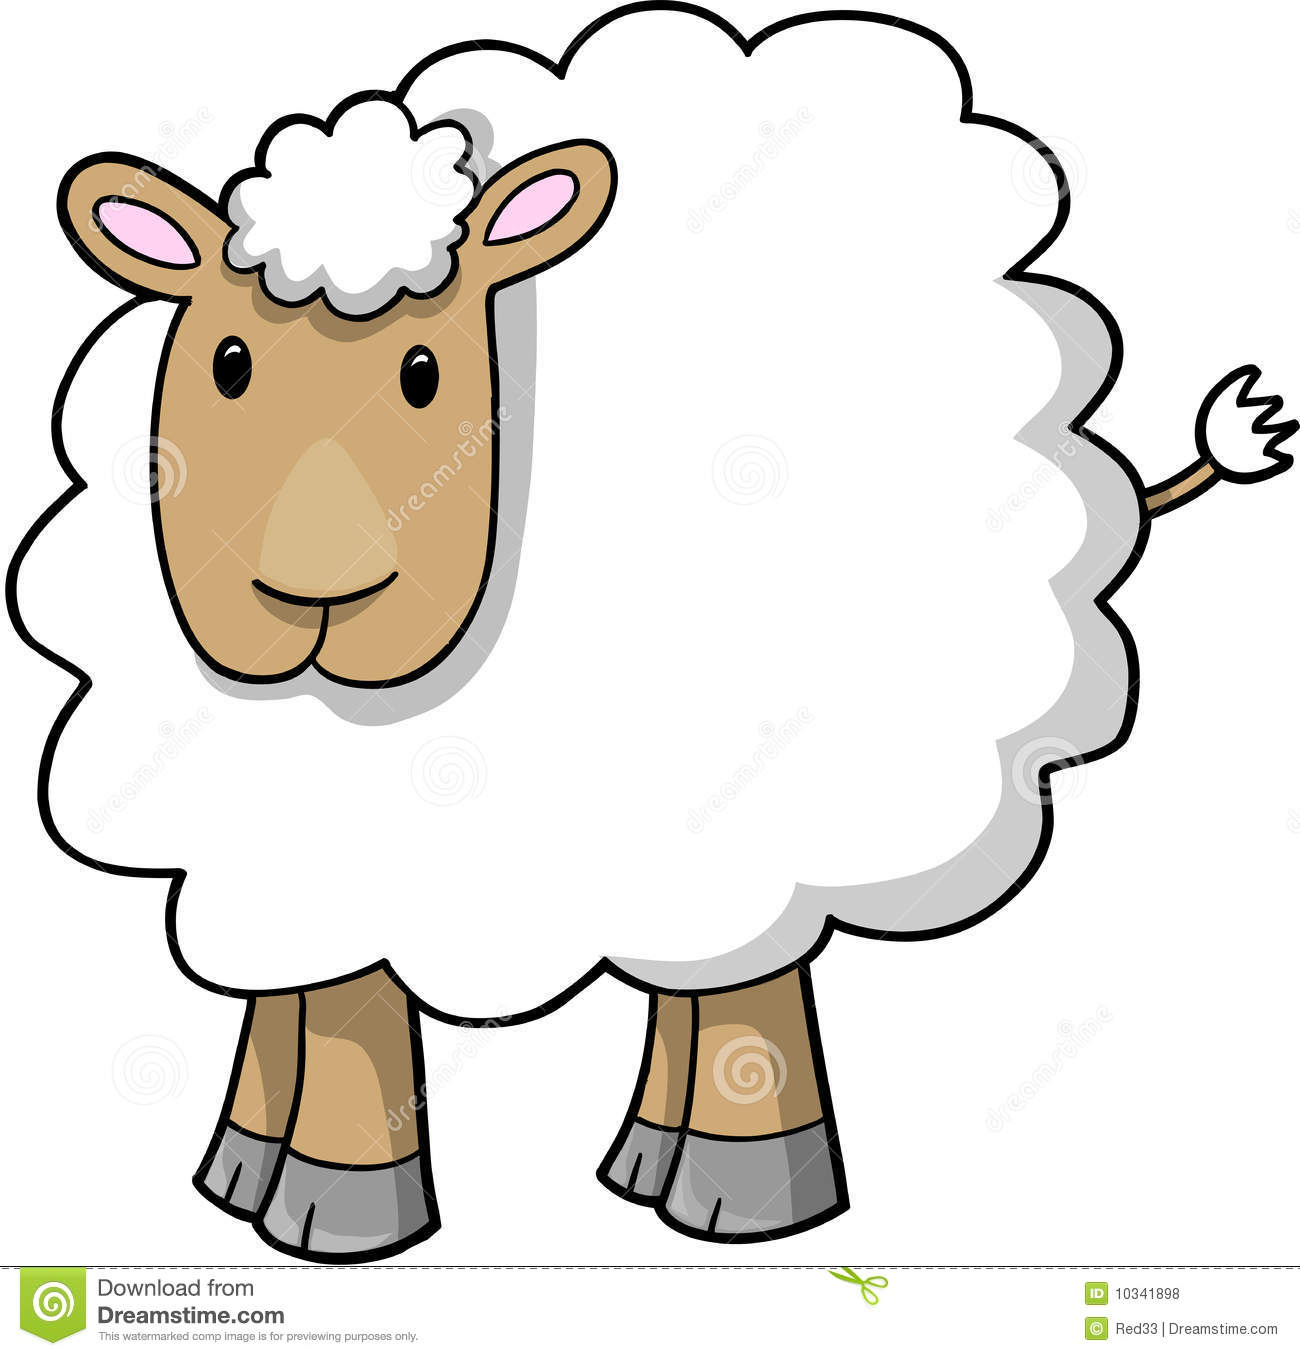 Royalty Free Stock Photos Sheep Lamb Vector Illustration Image10341898 on Happy Easter 2 Coloring Page